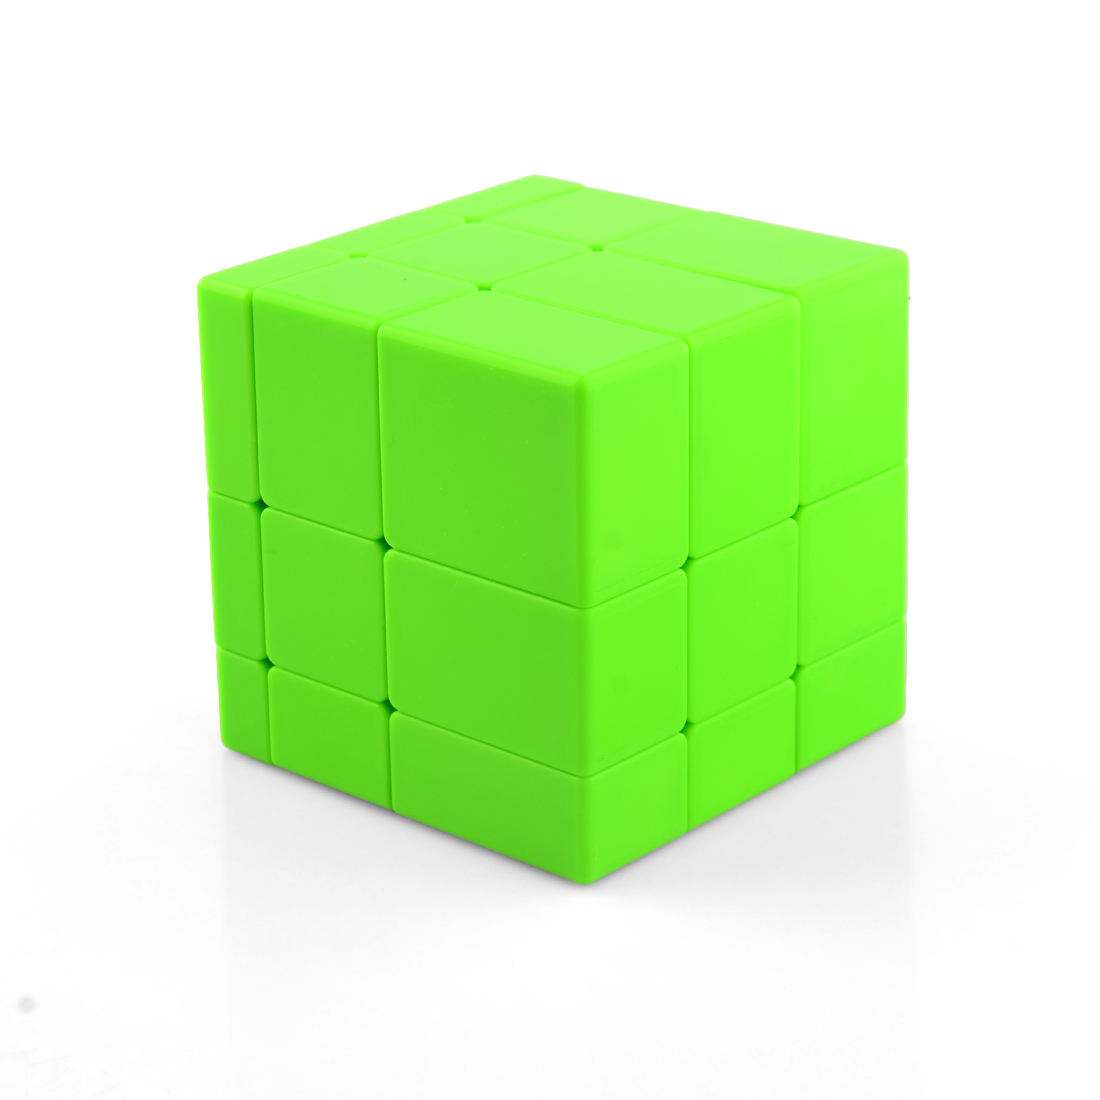 Mirror Cube QiYi 3X3 Mirror Blocks Magic Cube Puzzle Toys for Kids Beginner Gift Magic Cube